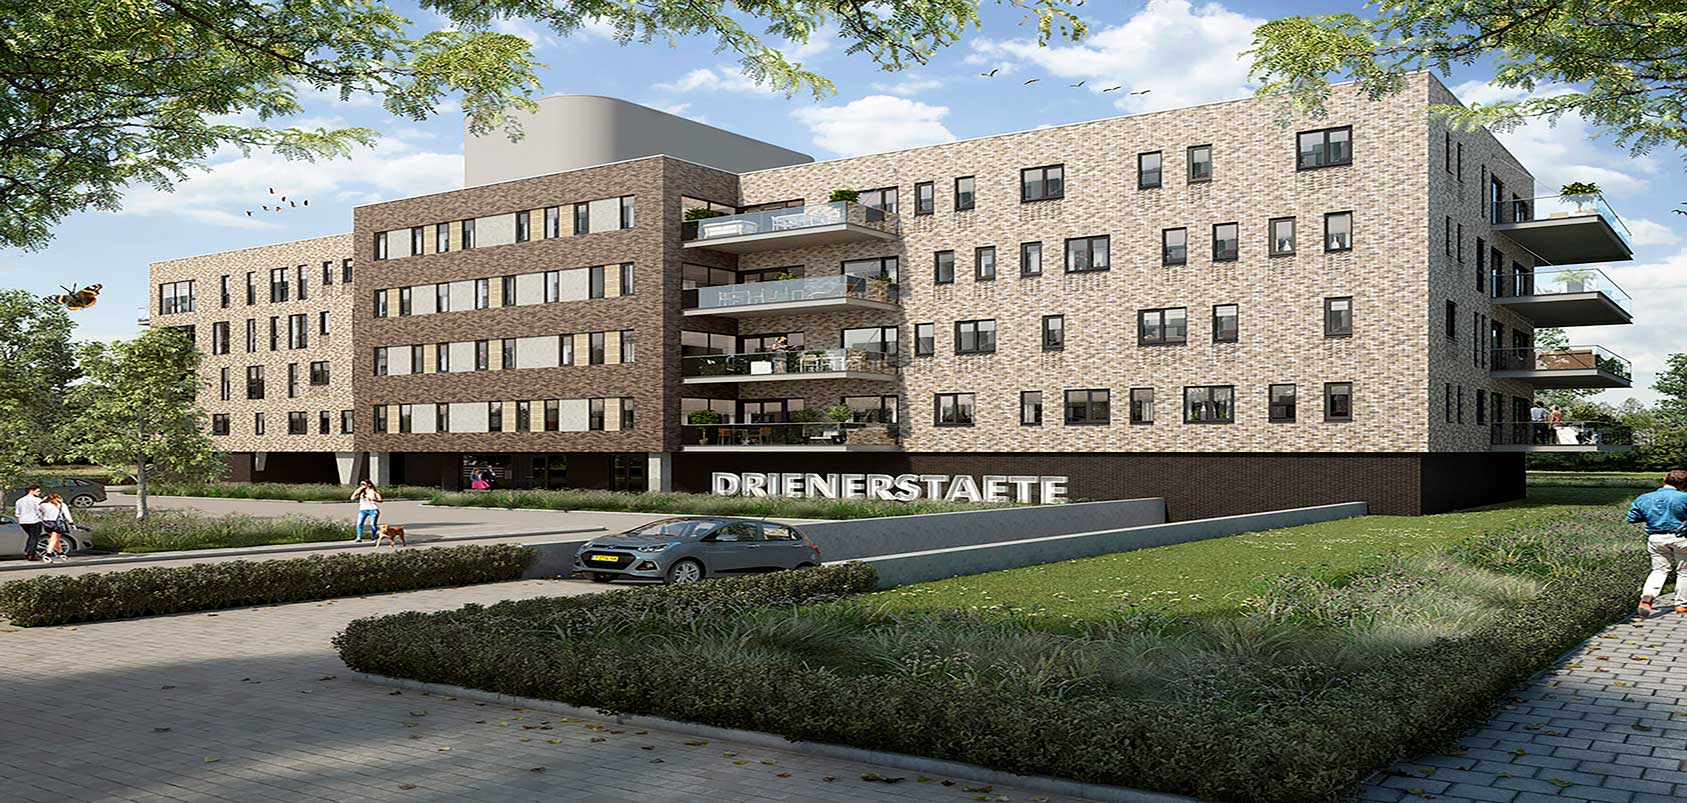 29 Apartments Drienerstaete Hengelo